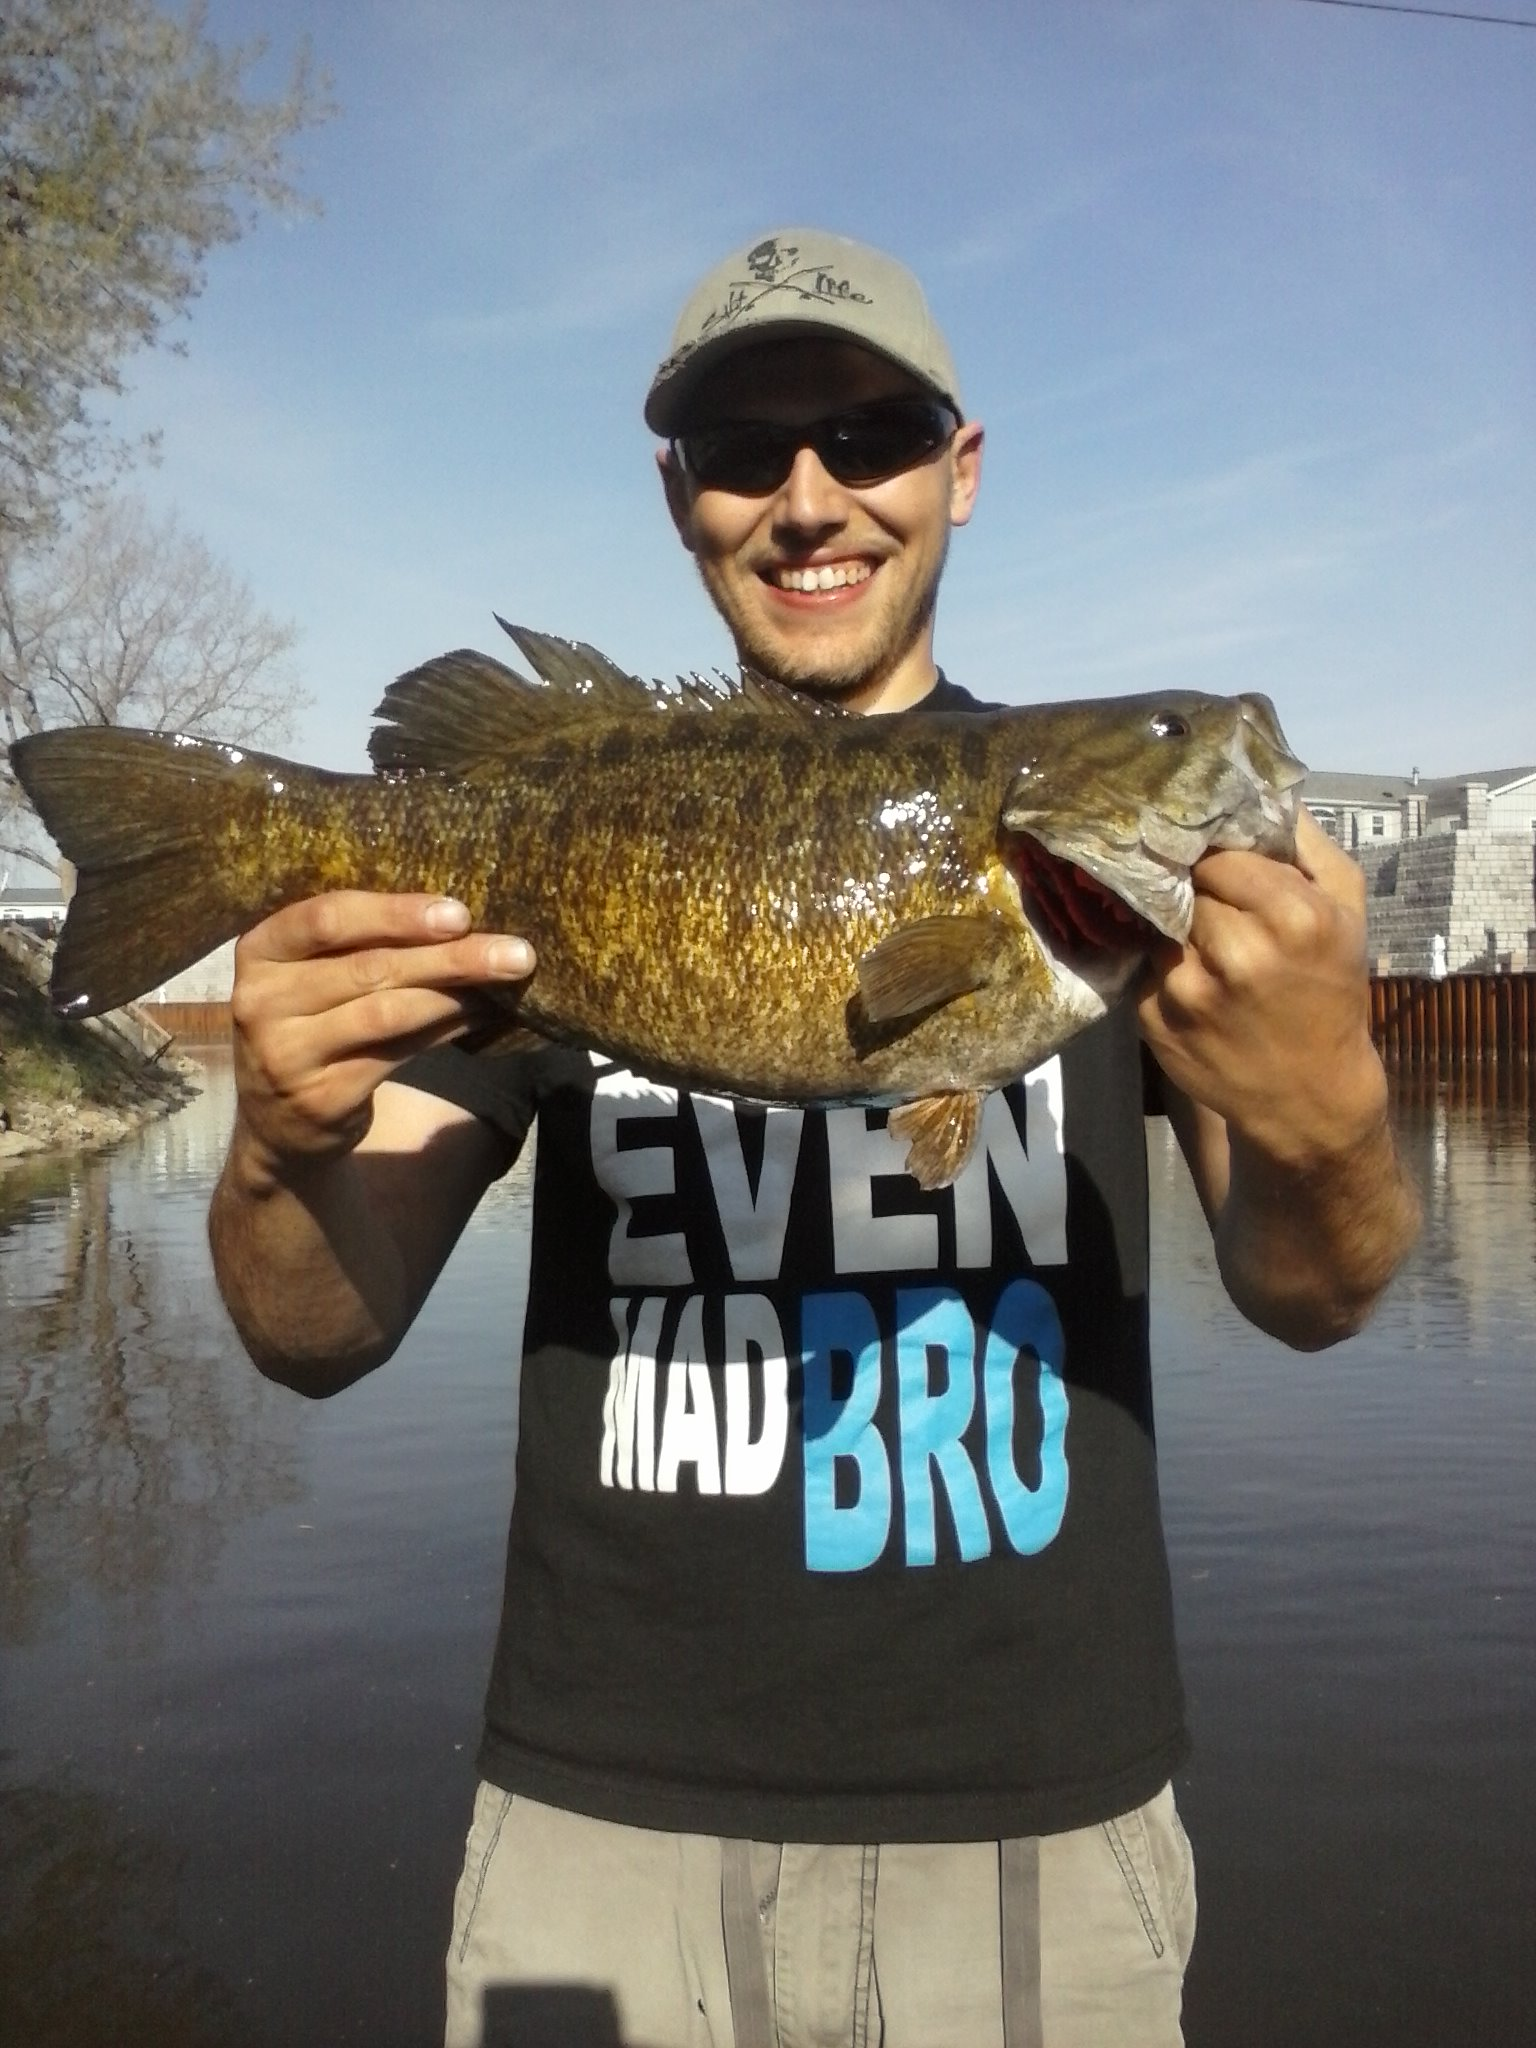 ben clifton flint Michigan  this beast hit my tube jig 6 feet off the boat so hard it scared me.